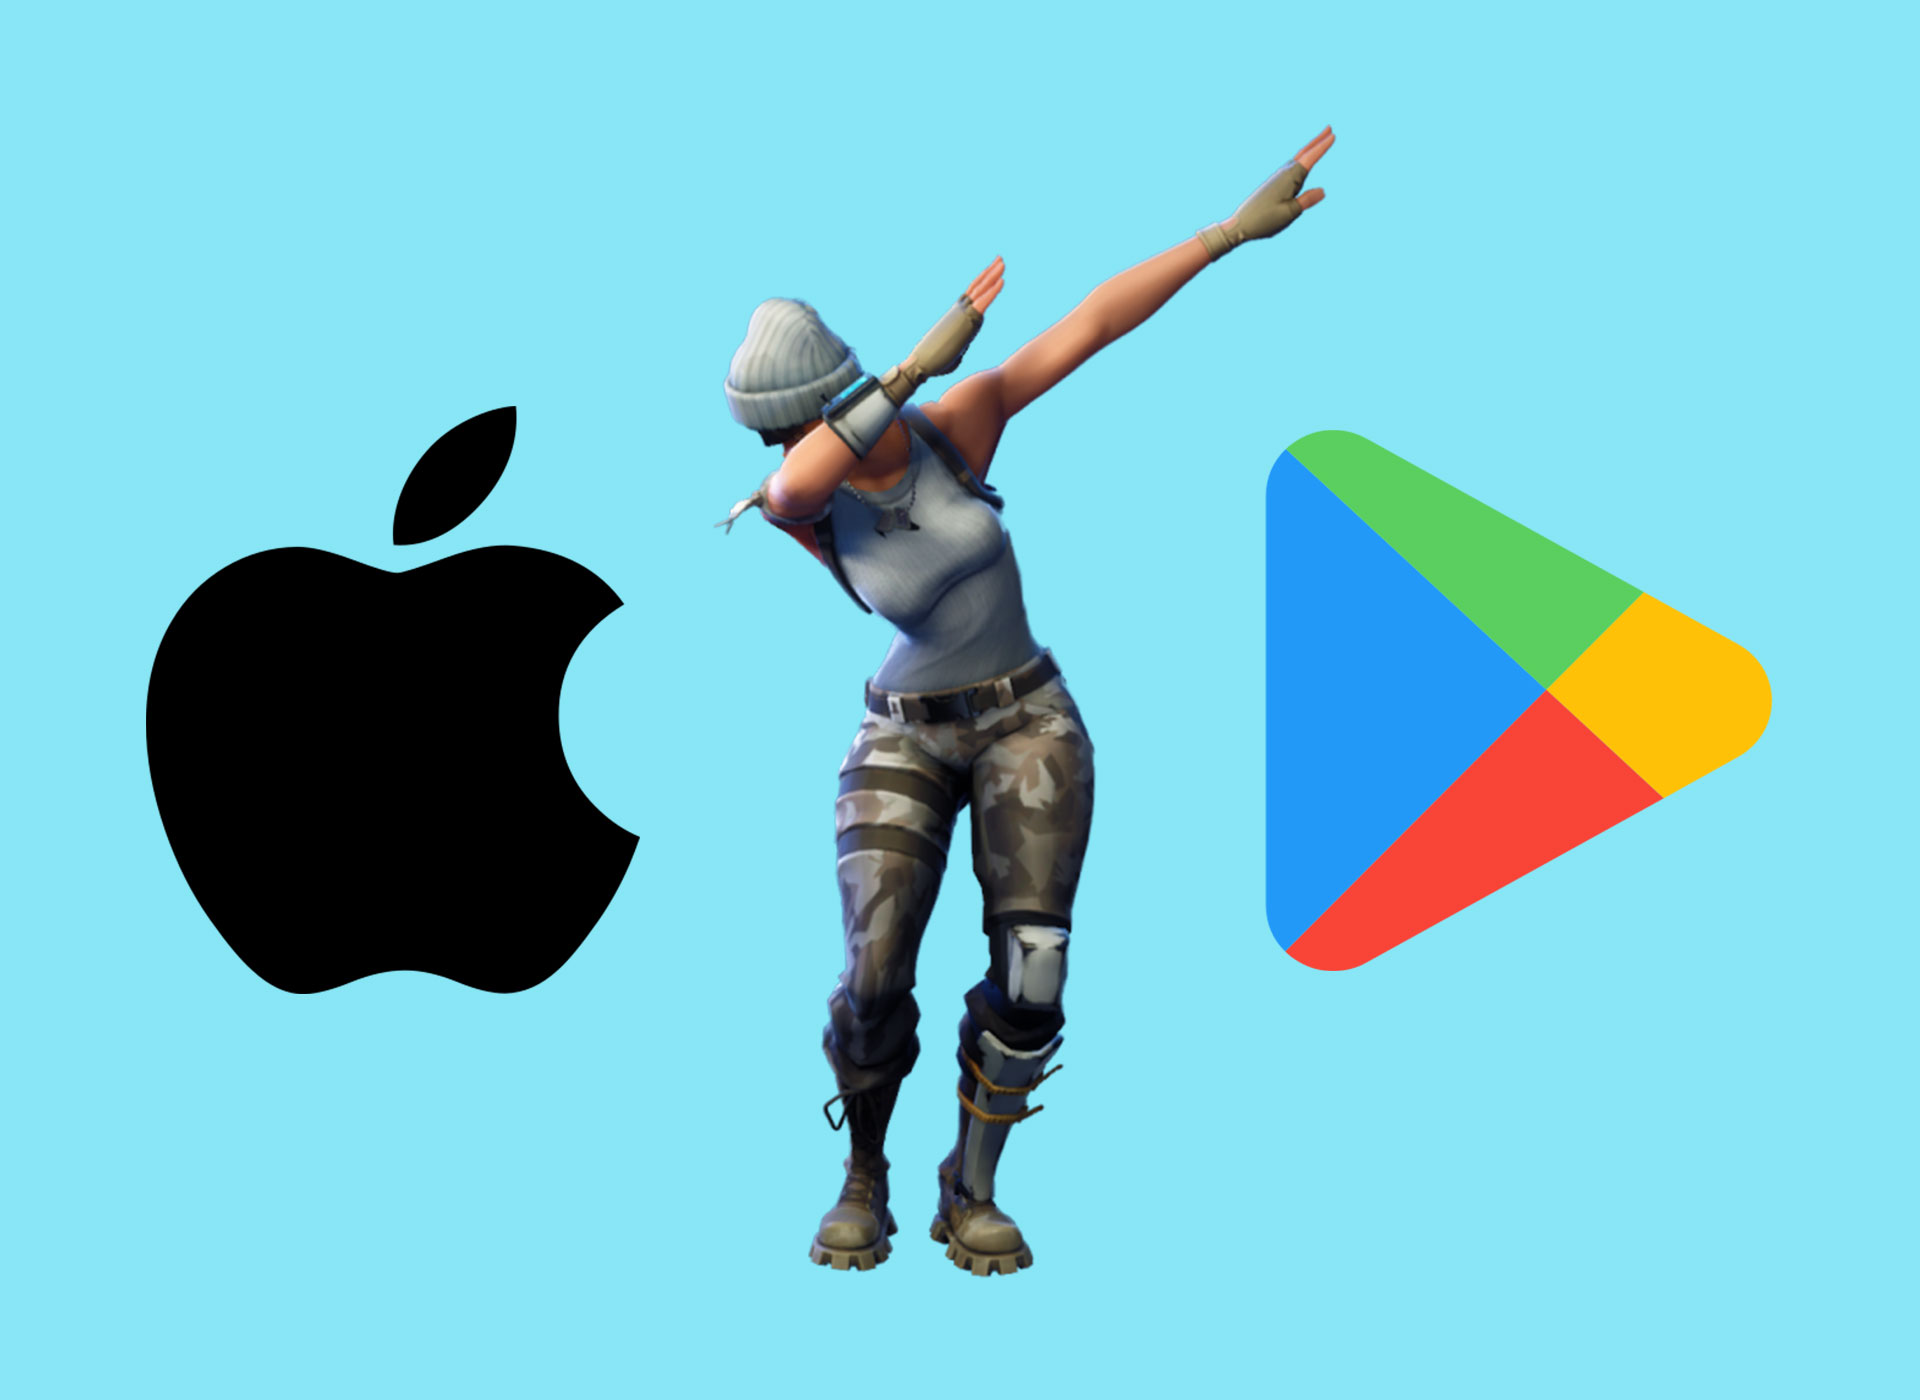 Losing Fortnite Won T Hurt Apple S Revenues But The Publicity Will Sting Apple is blocking fortnite updates and new installs on the app store, and has terminated our ability fortnite remains available on playstation 4, xbox one, nintendo switch, pc, mac, geforce now. losing fortnite won t hurt apple s